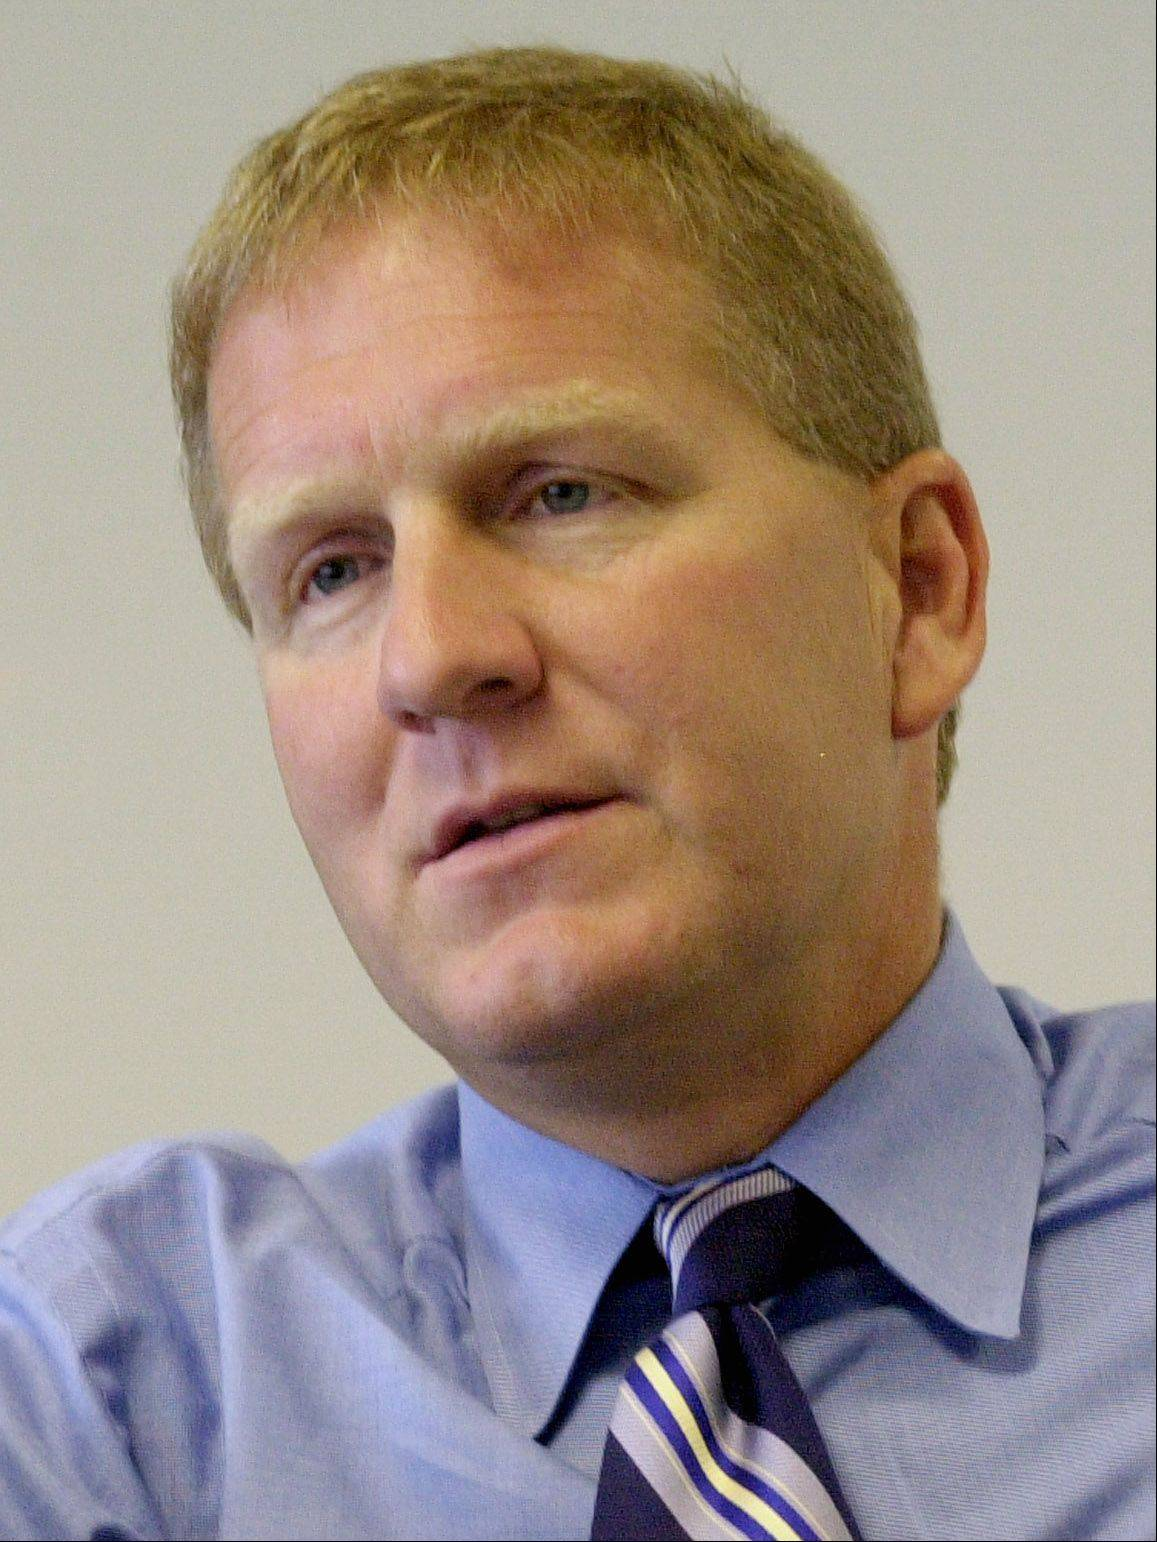 Illinois Republican leader Tom Cross